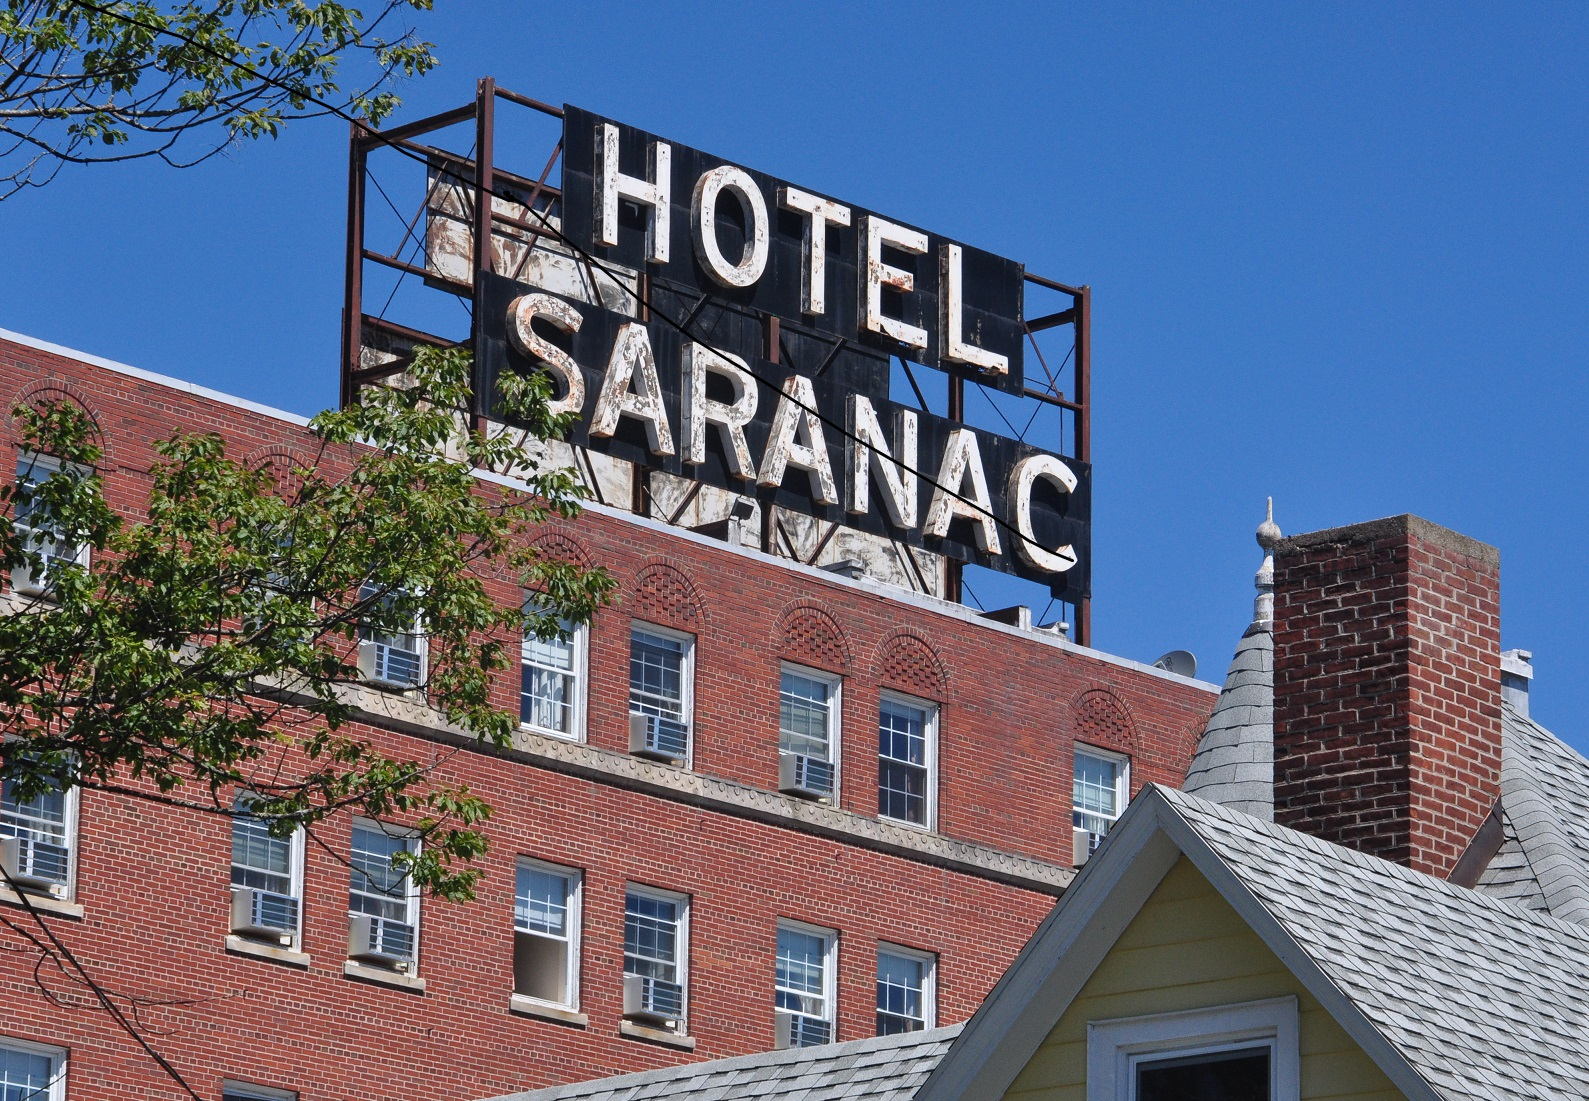 The Faded Hotel Saranac Was Once A Centerpiece Of Village Economy And Social Life